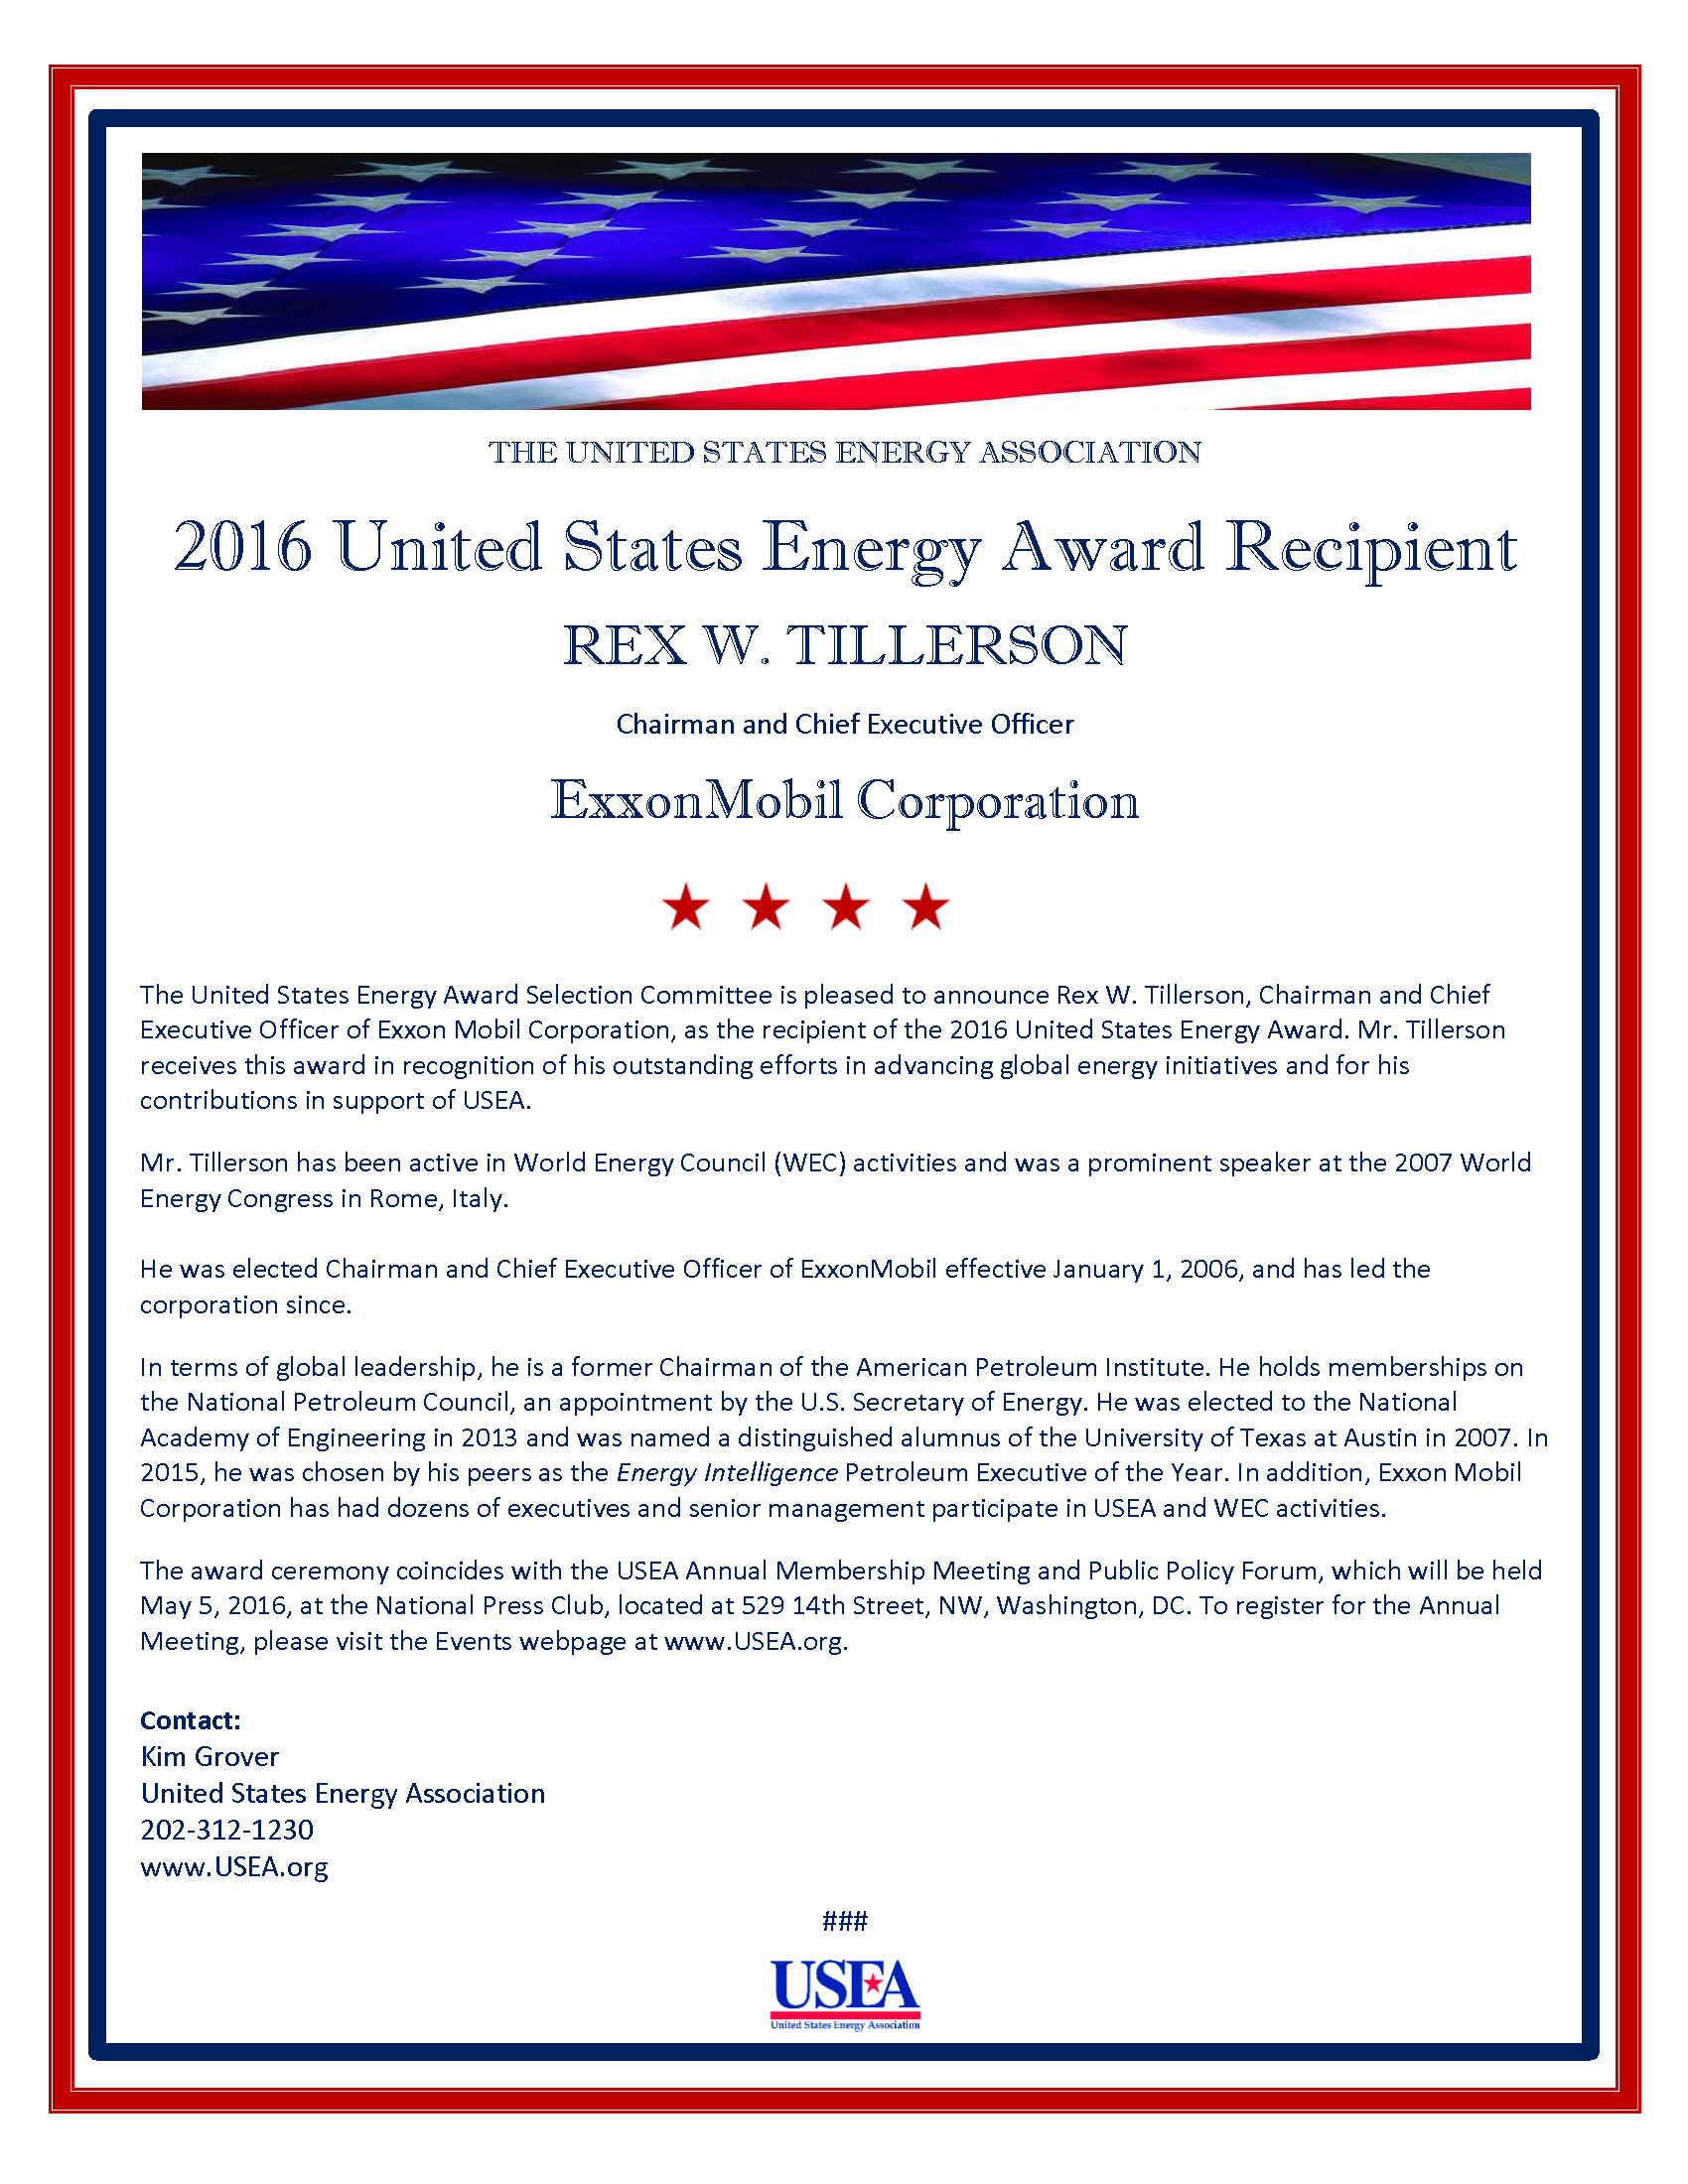 2016 United States Energy Award Recipient - Rex W. Tillerson, ExxonMobil Corporation